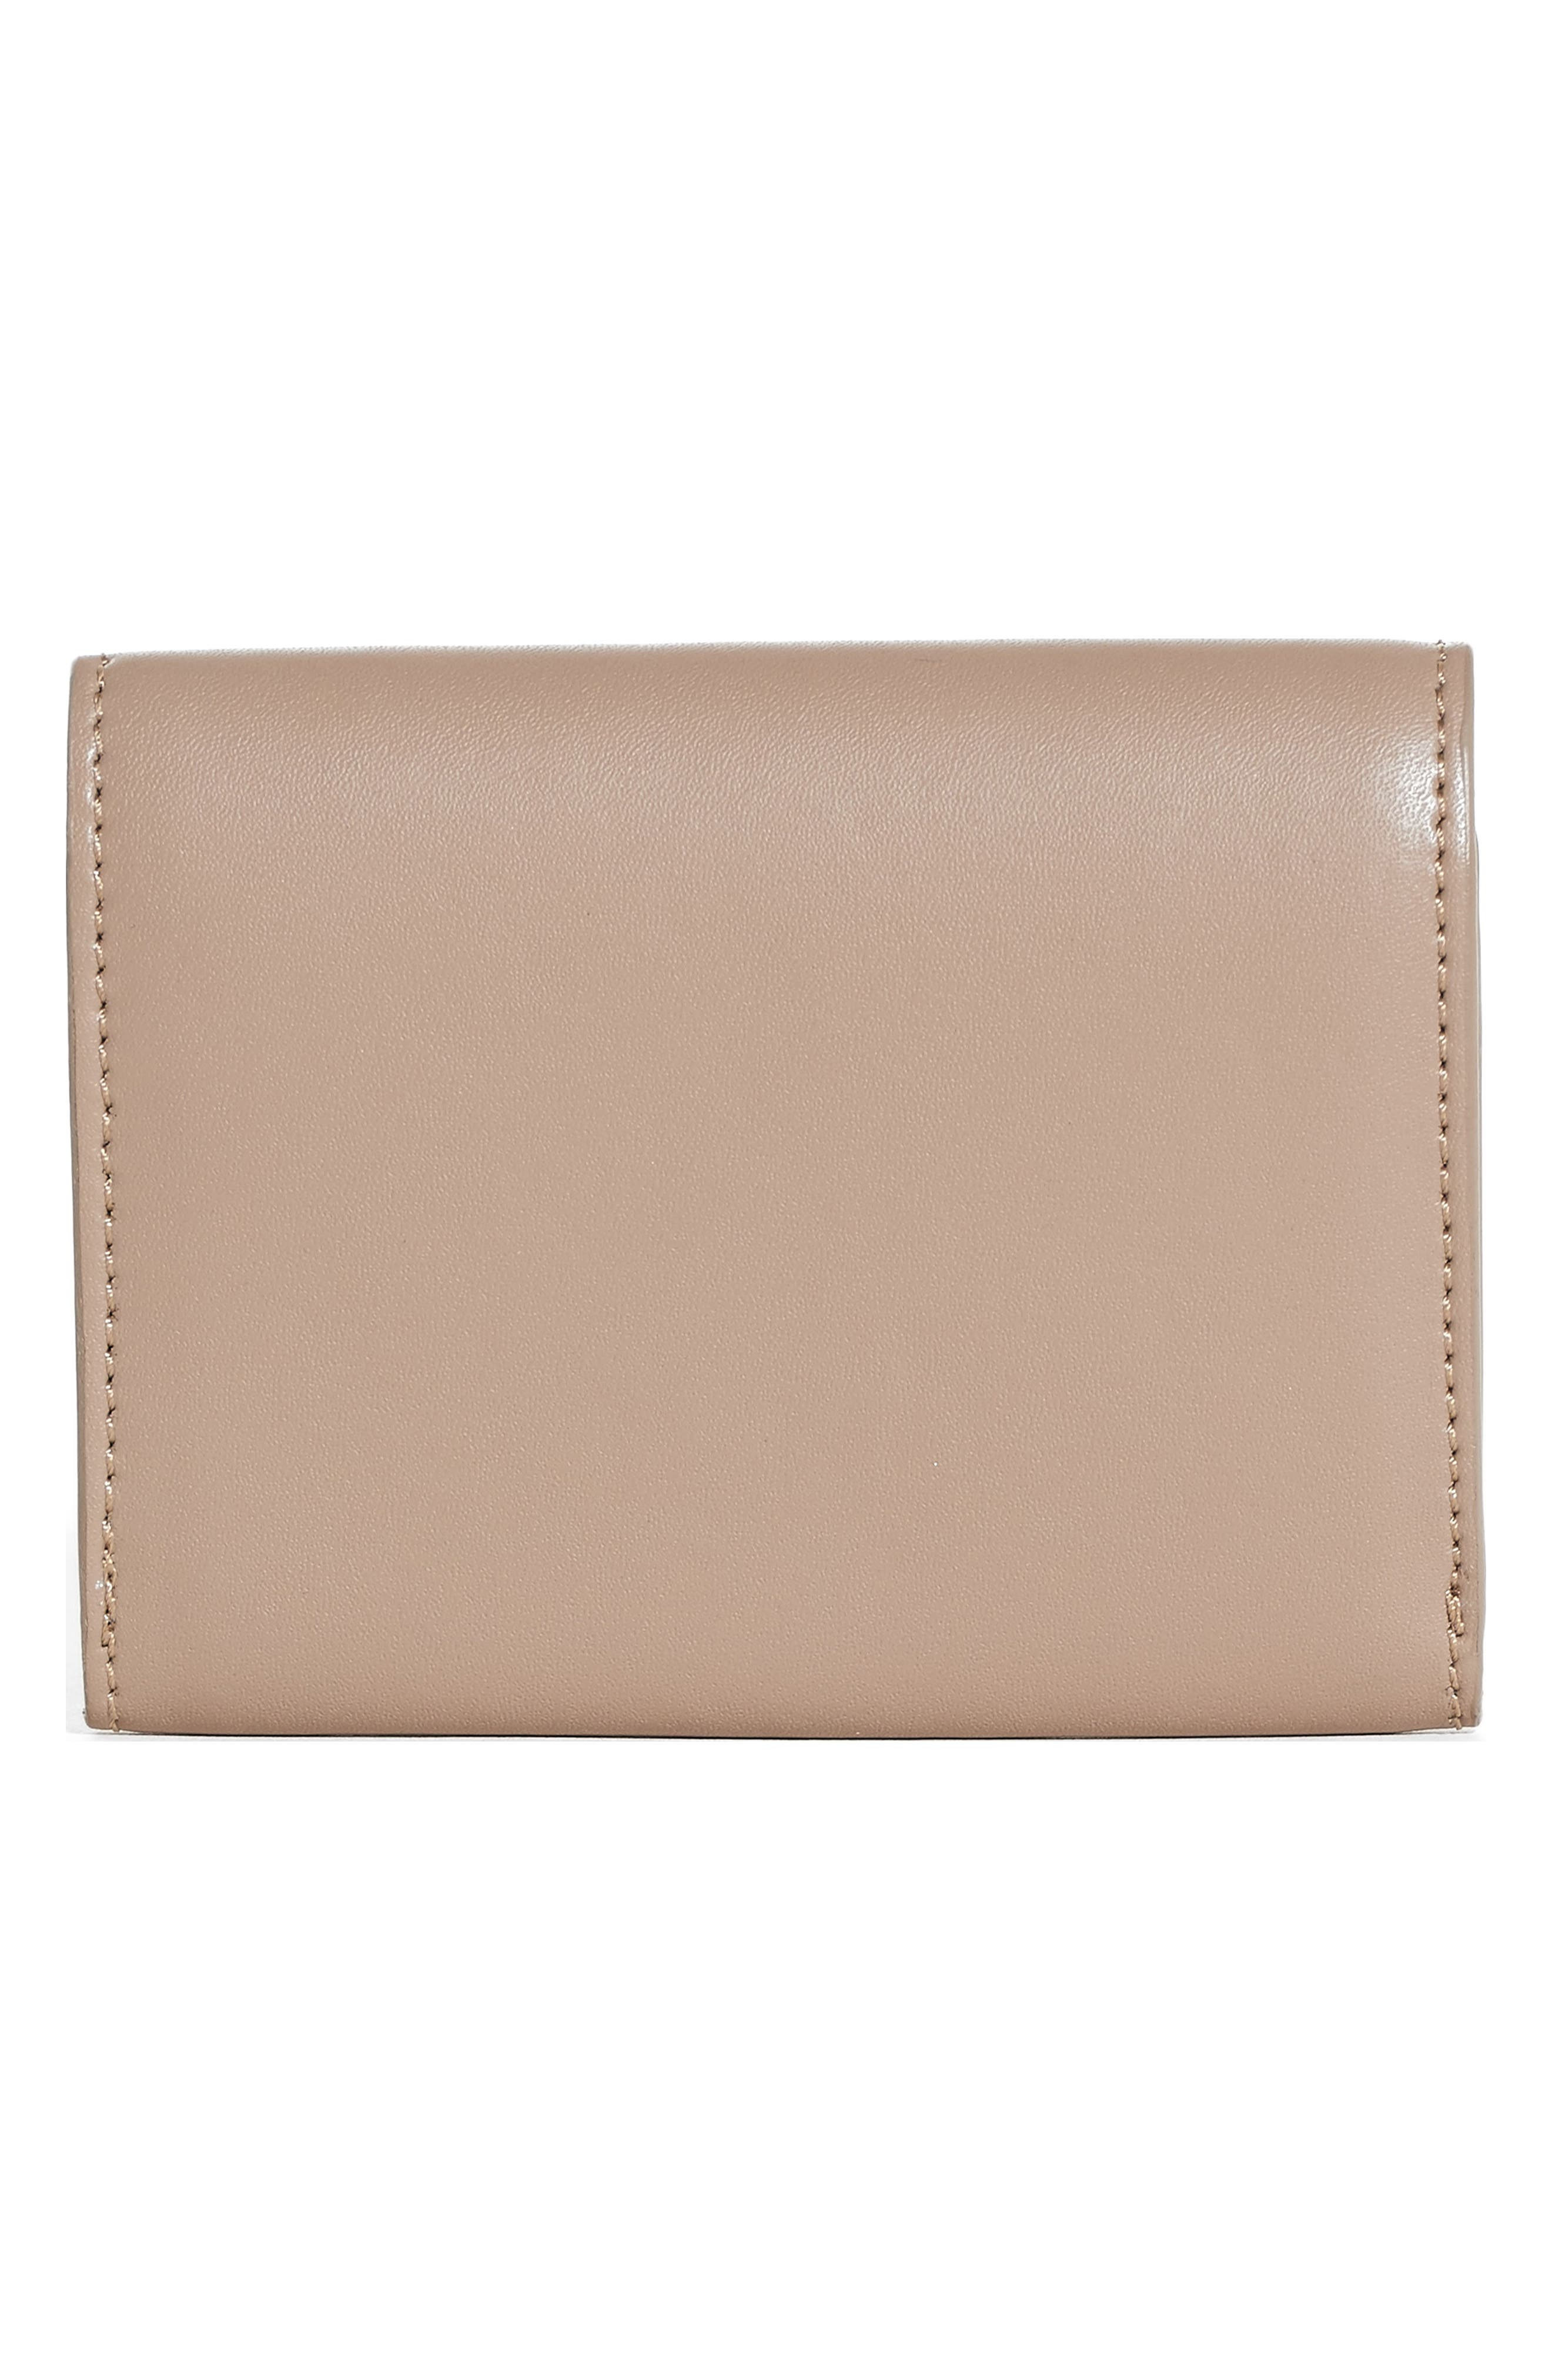 Leather Card Case,                             Alternate thumbnail 3, color,                             050